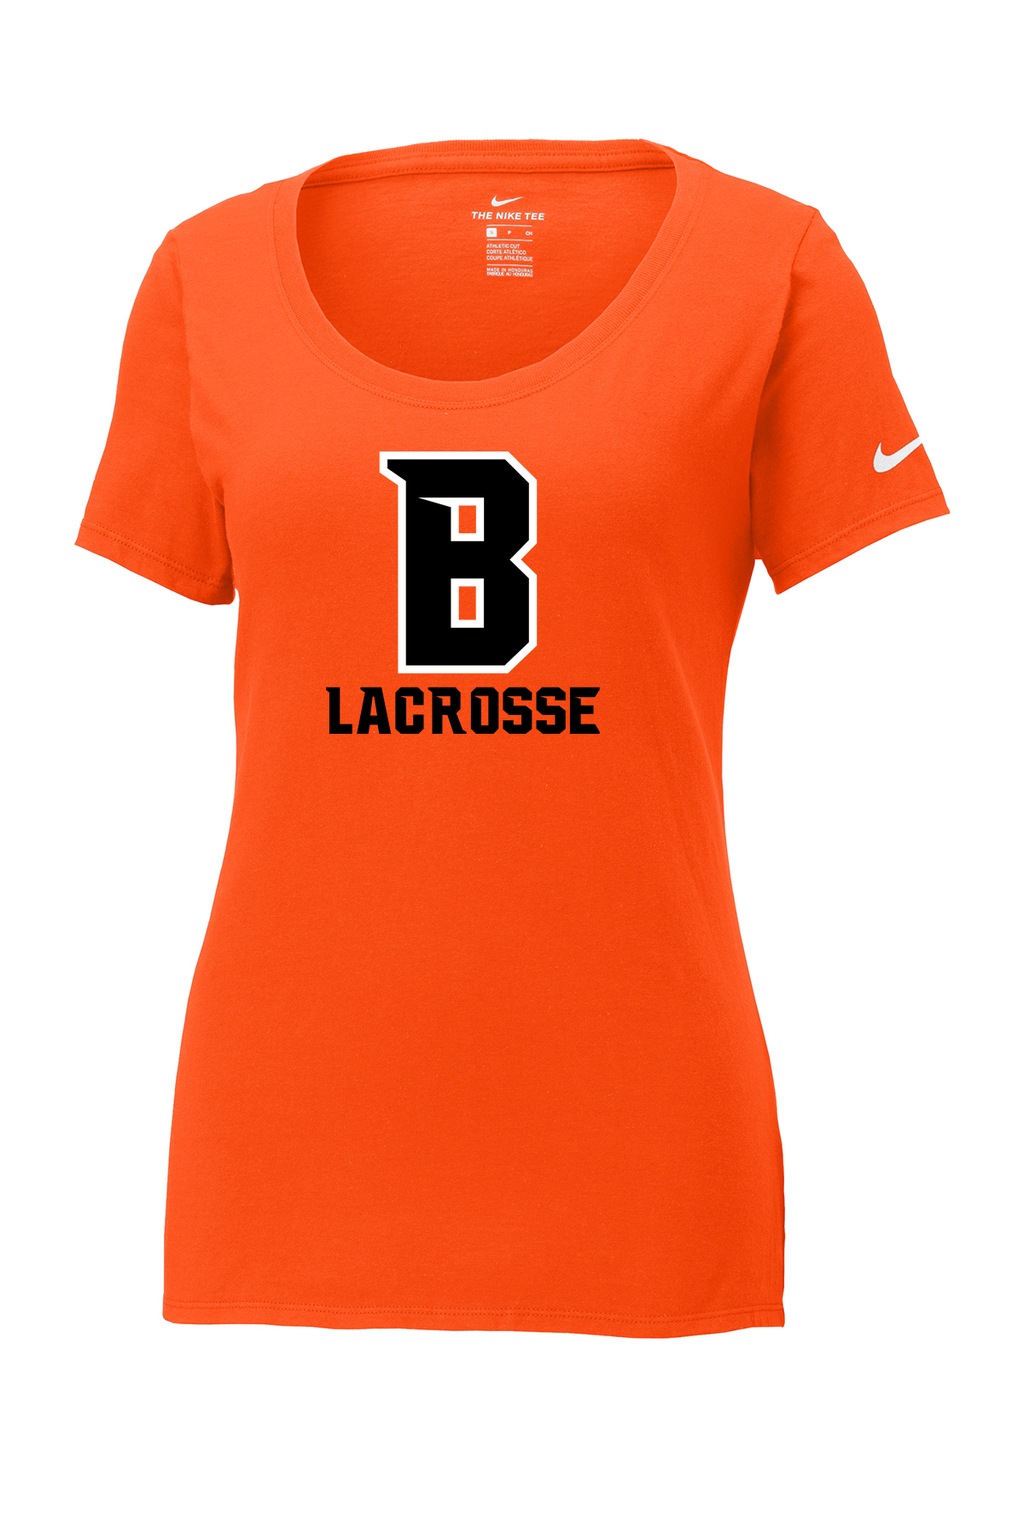 Babylon Lacrosse Nike Ladies Core Cotton Tee